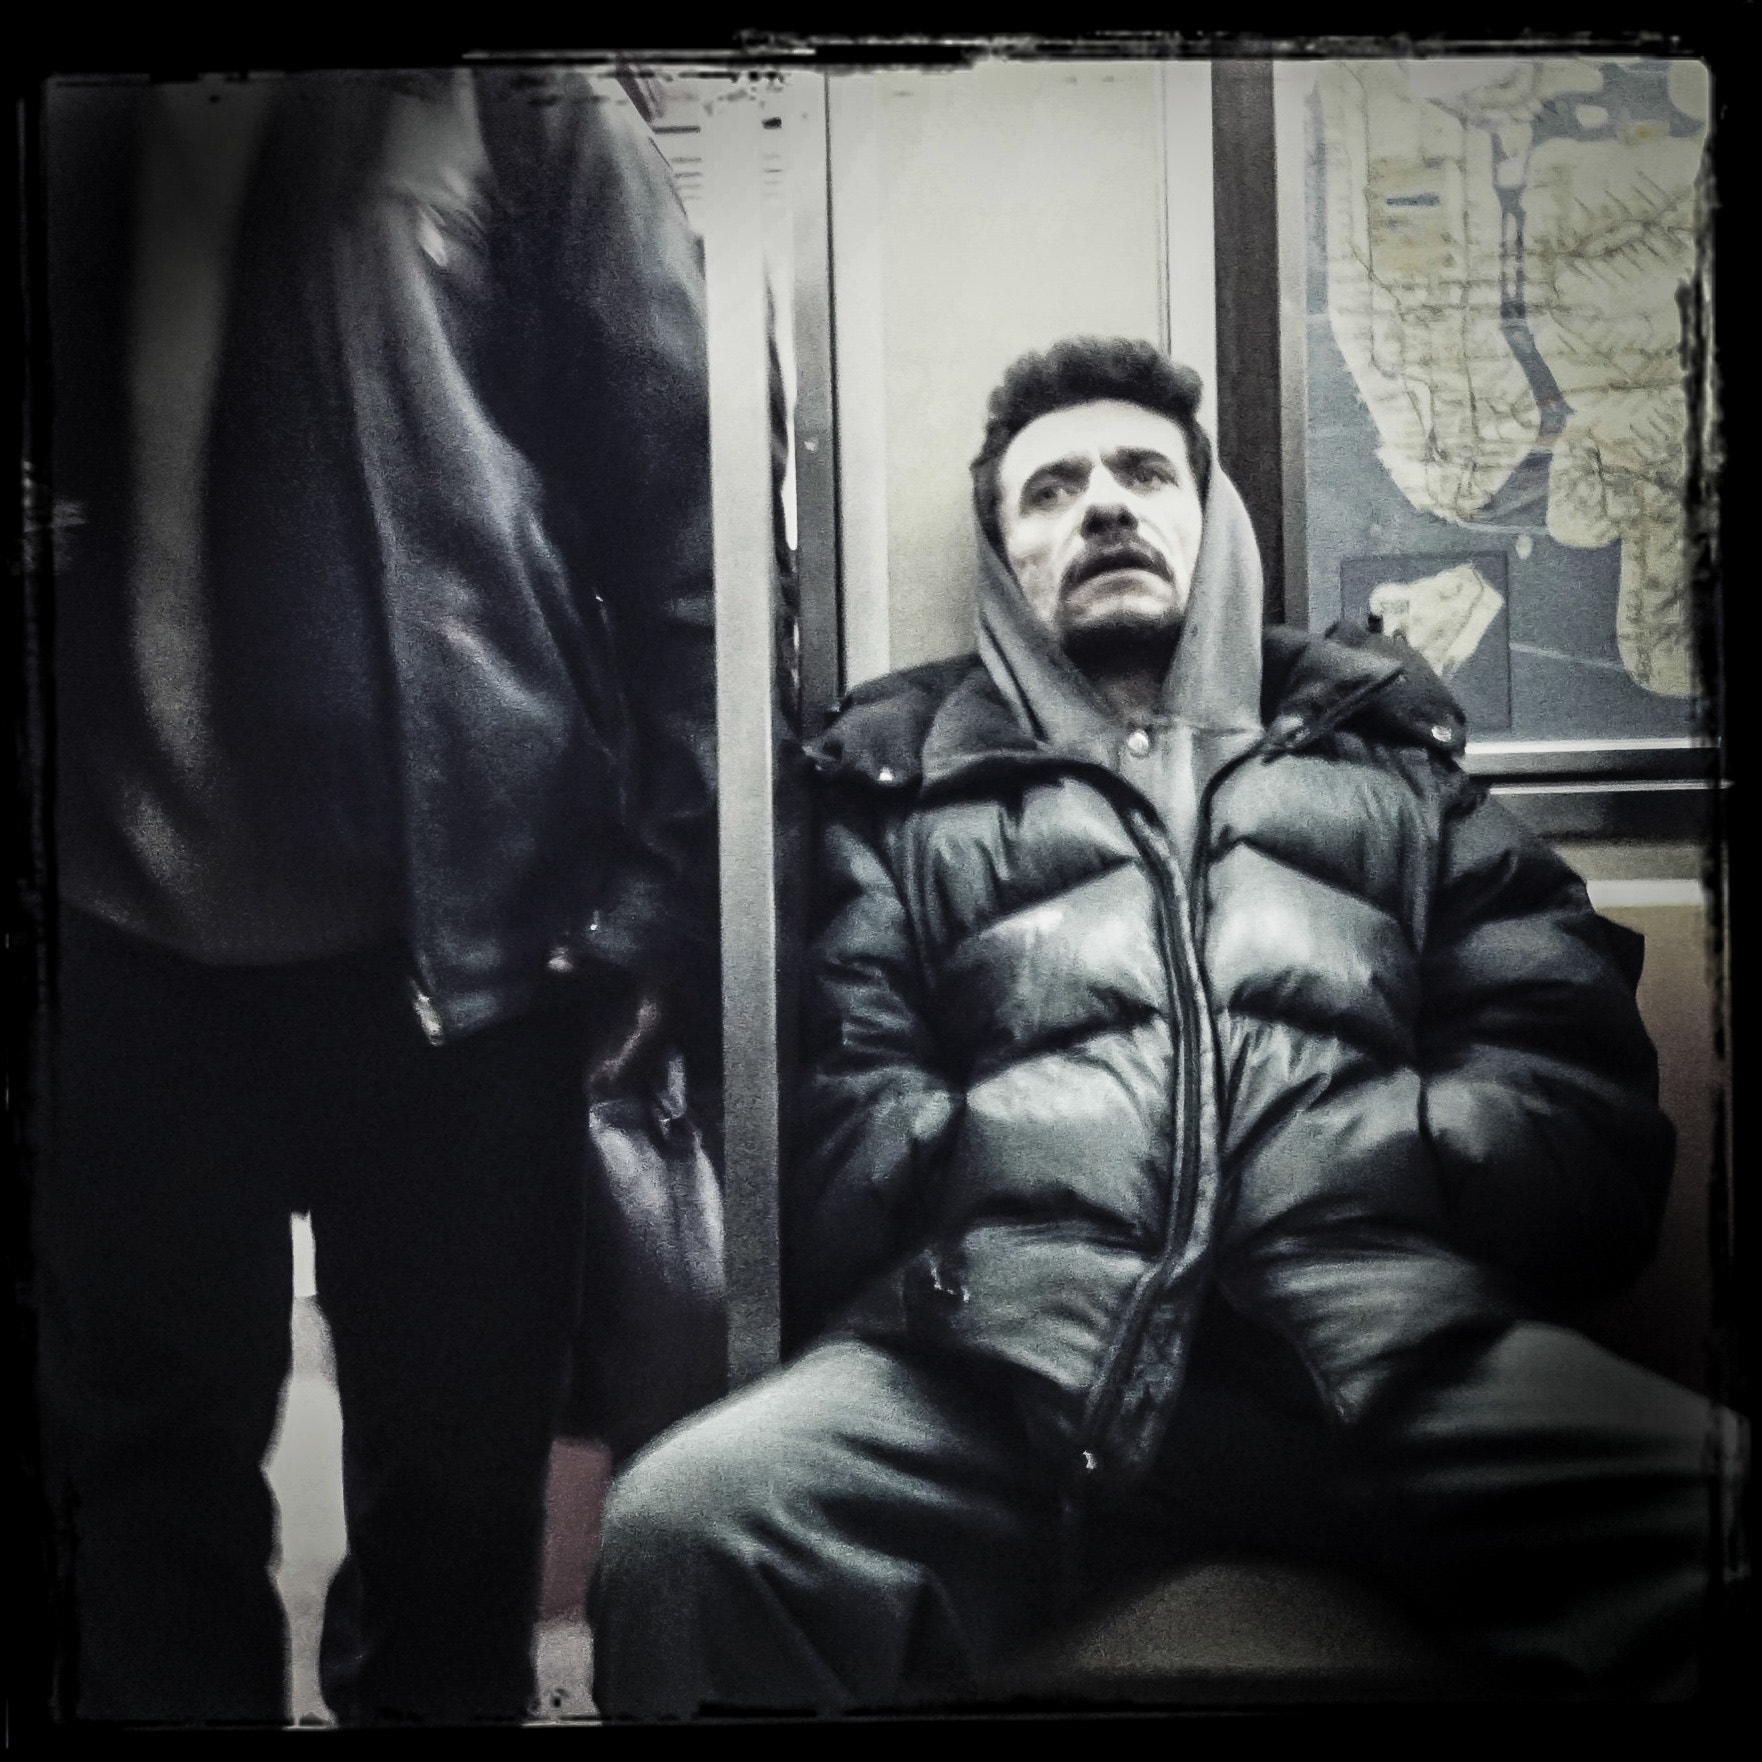 Photograph raw subway portrait by Vit Vitali vinduPhoto on 500px